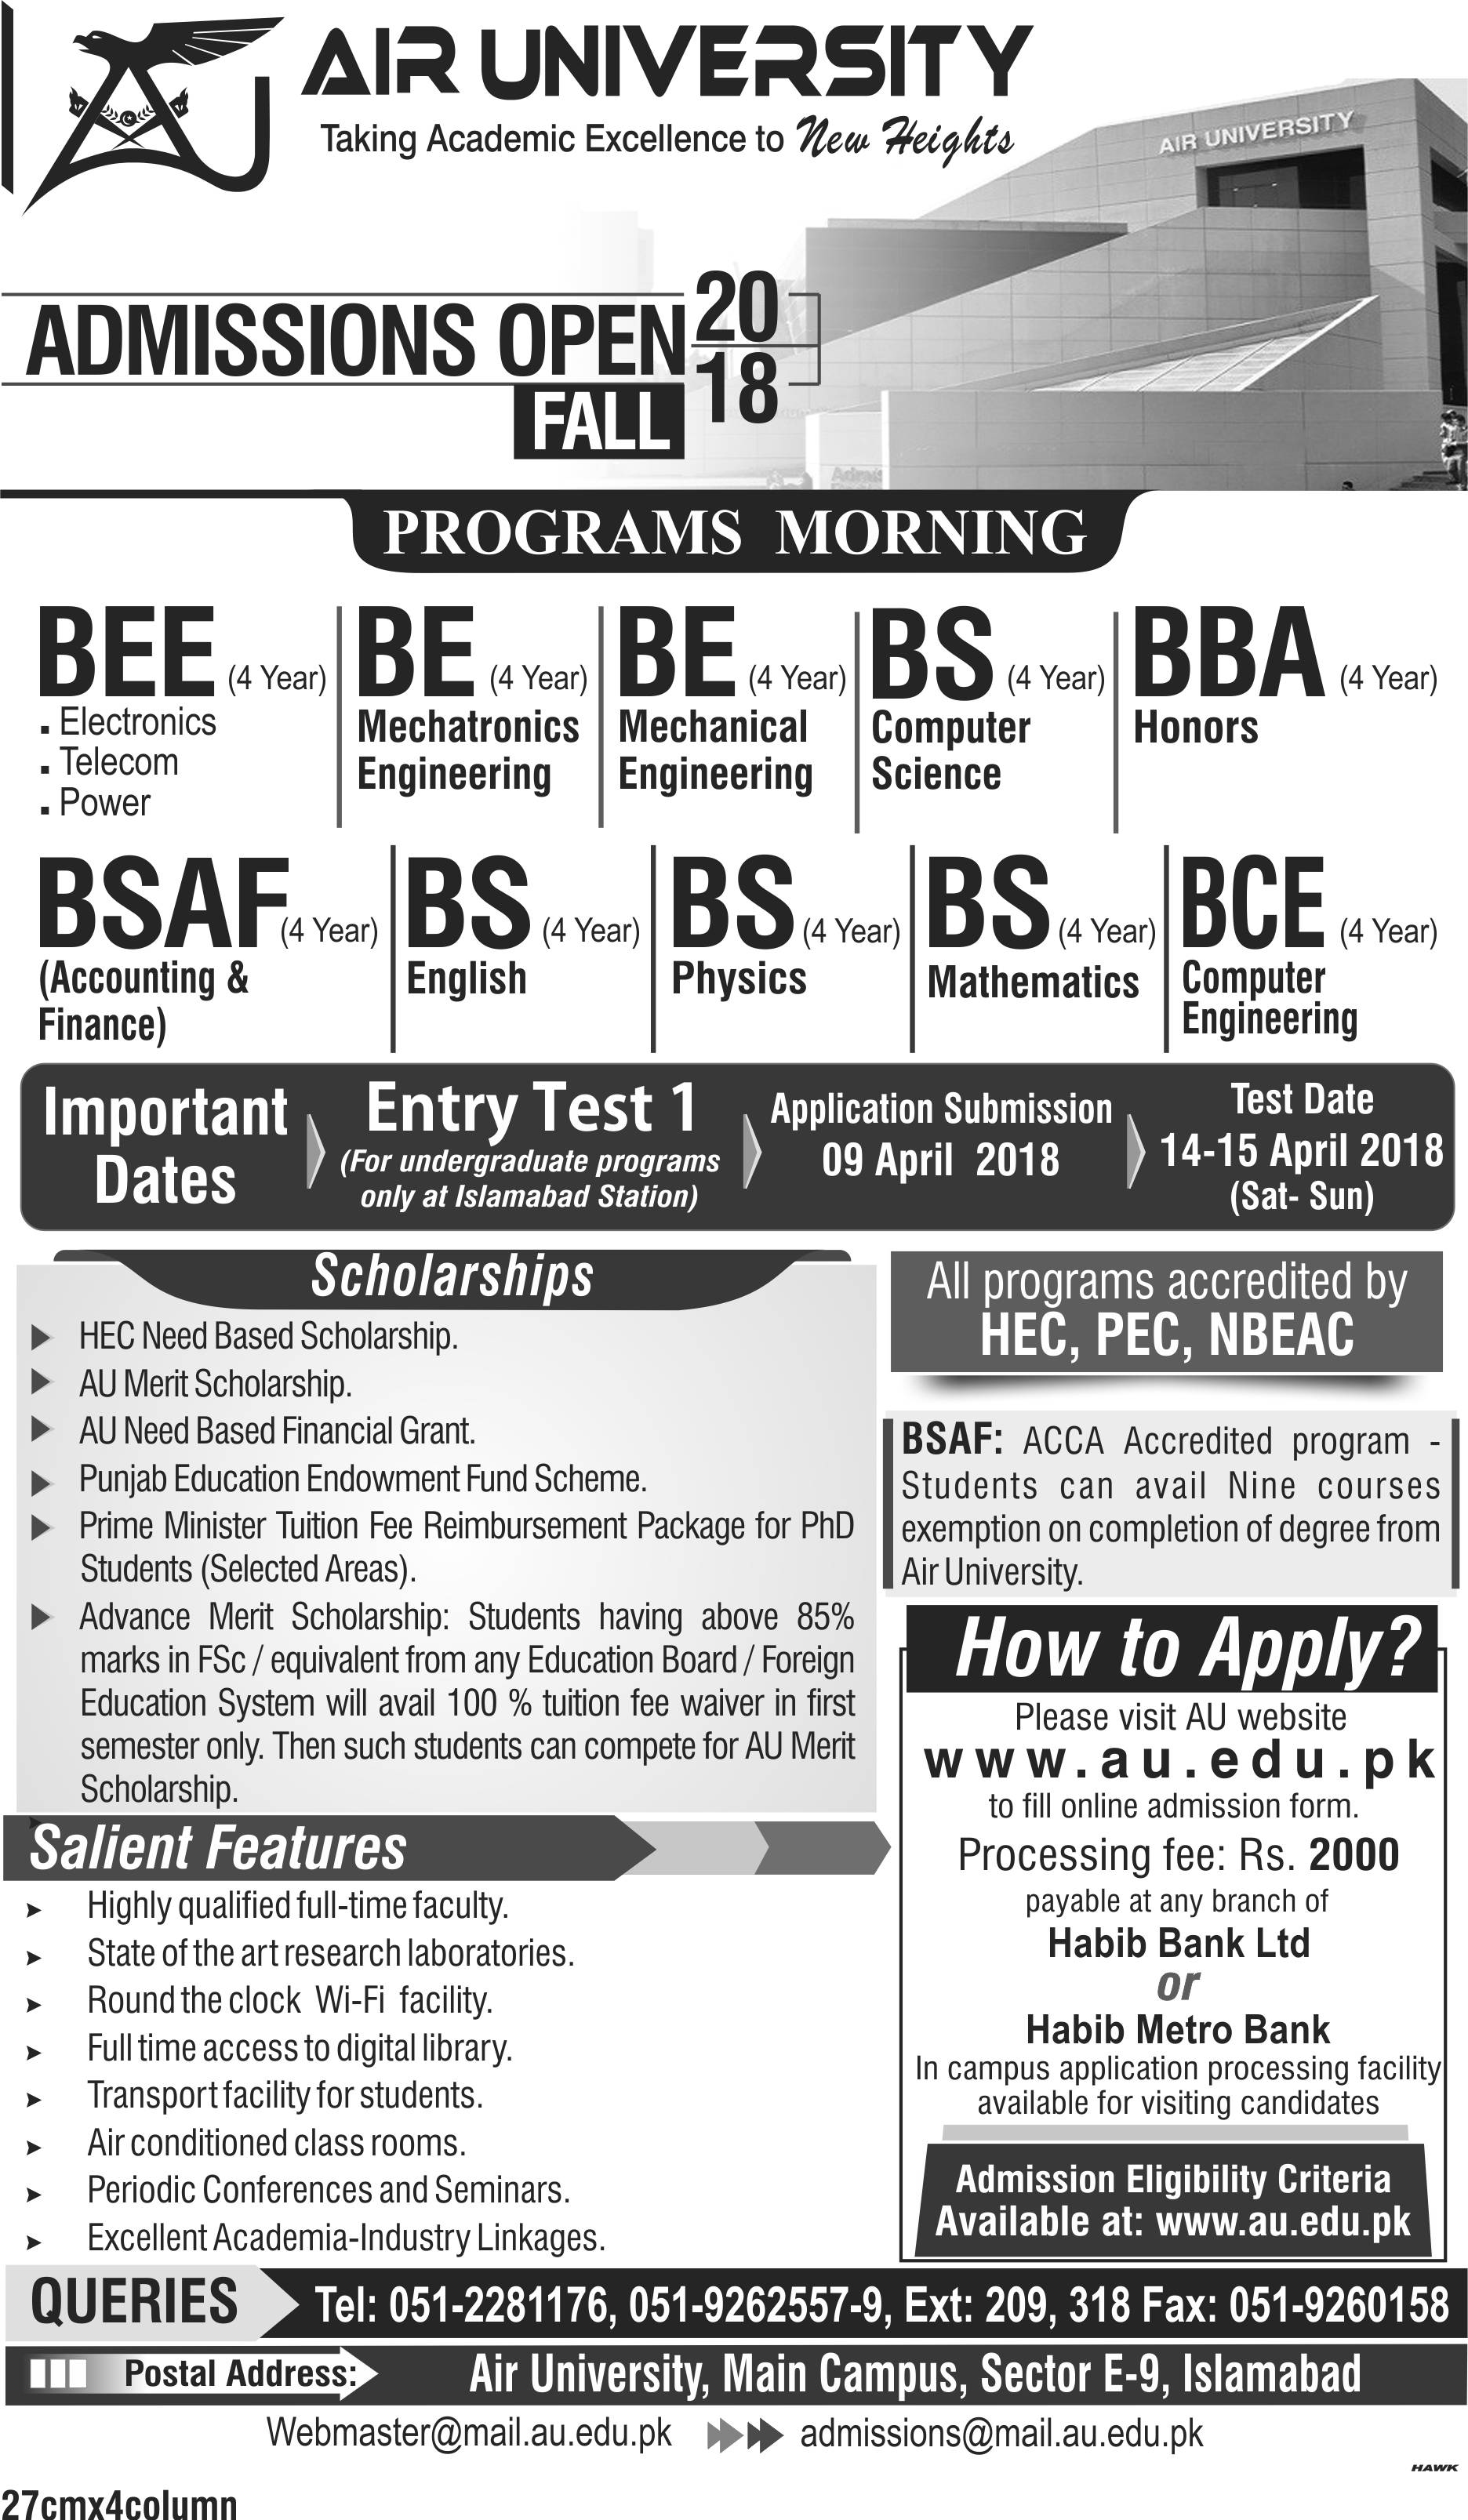 Air University (Islamabad) - Admission Open 2018